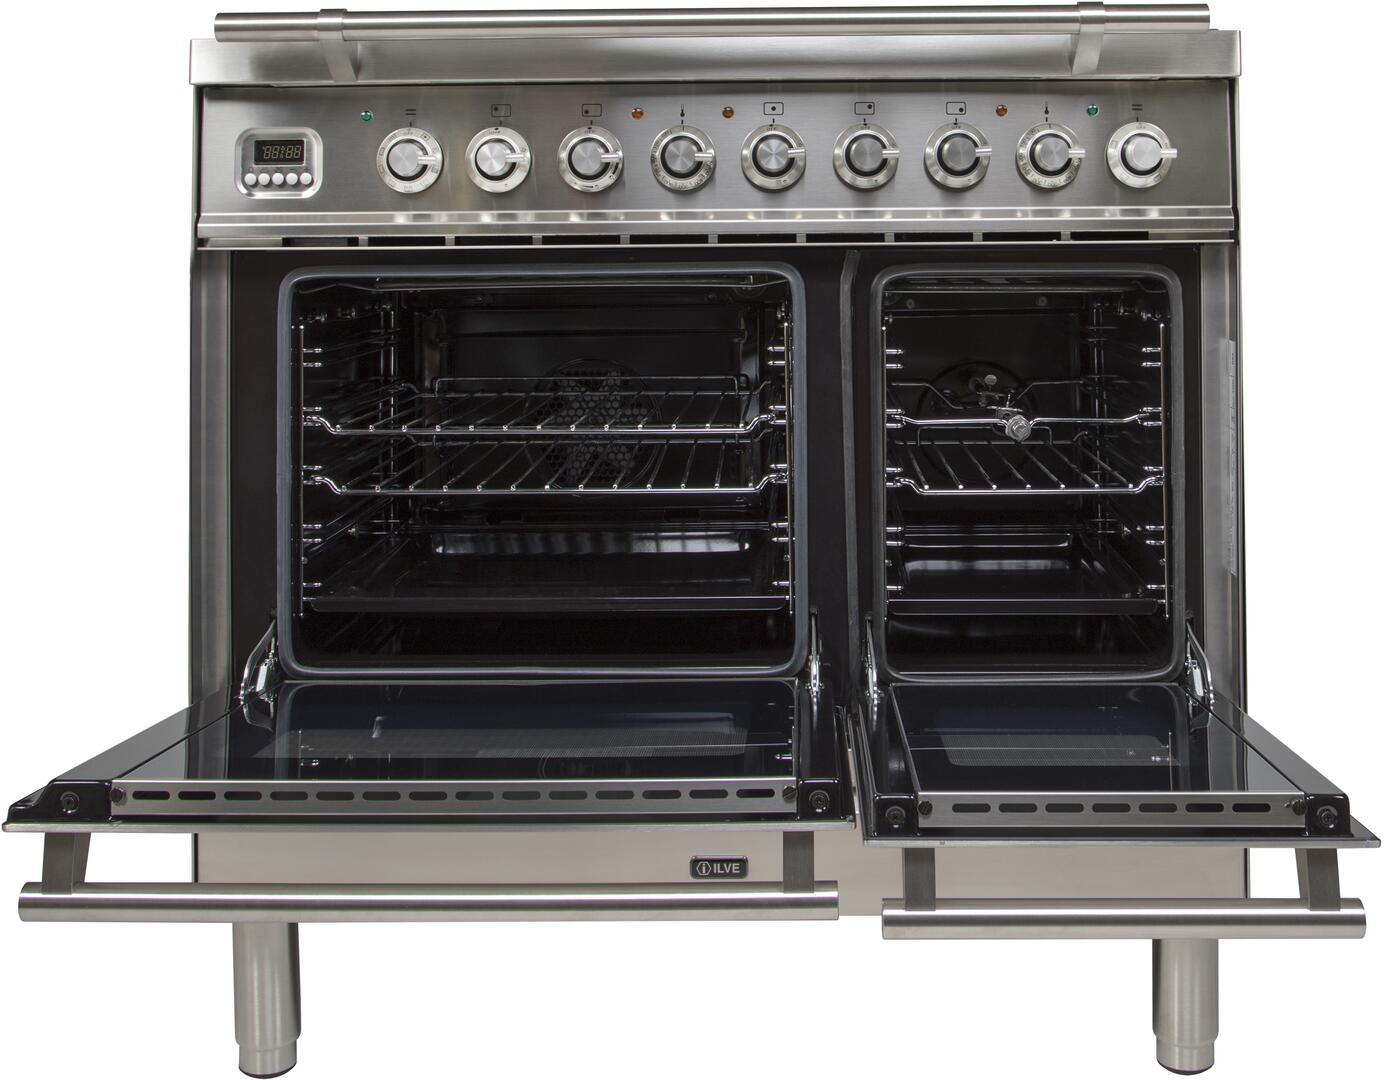 Ilve Professional Plus UPDW90FDMPI Freestanding Dual Fuel Range Stainless Steel, Oven Doors Opened